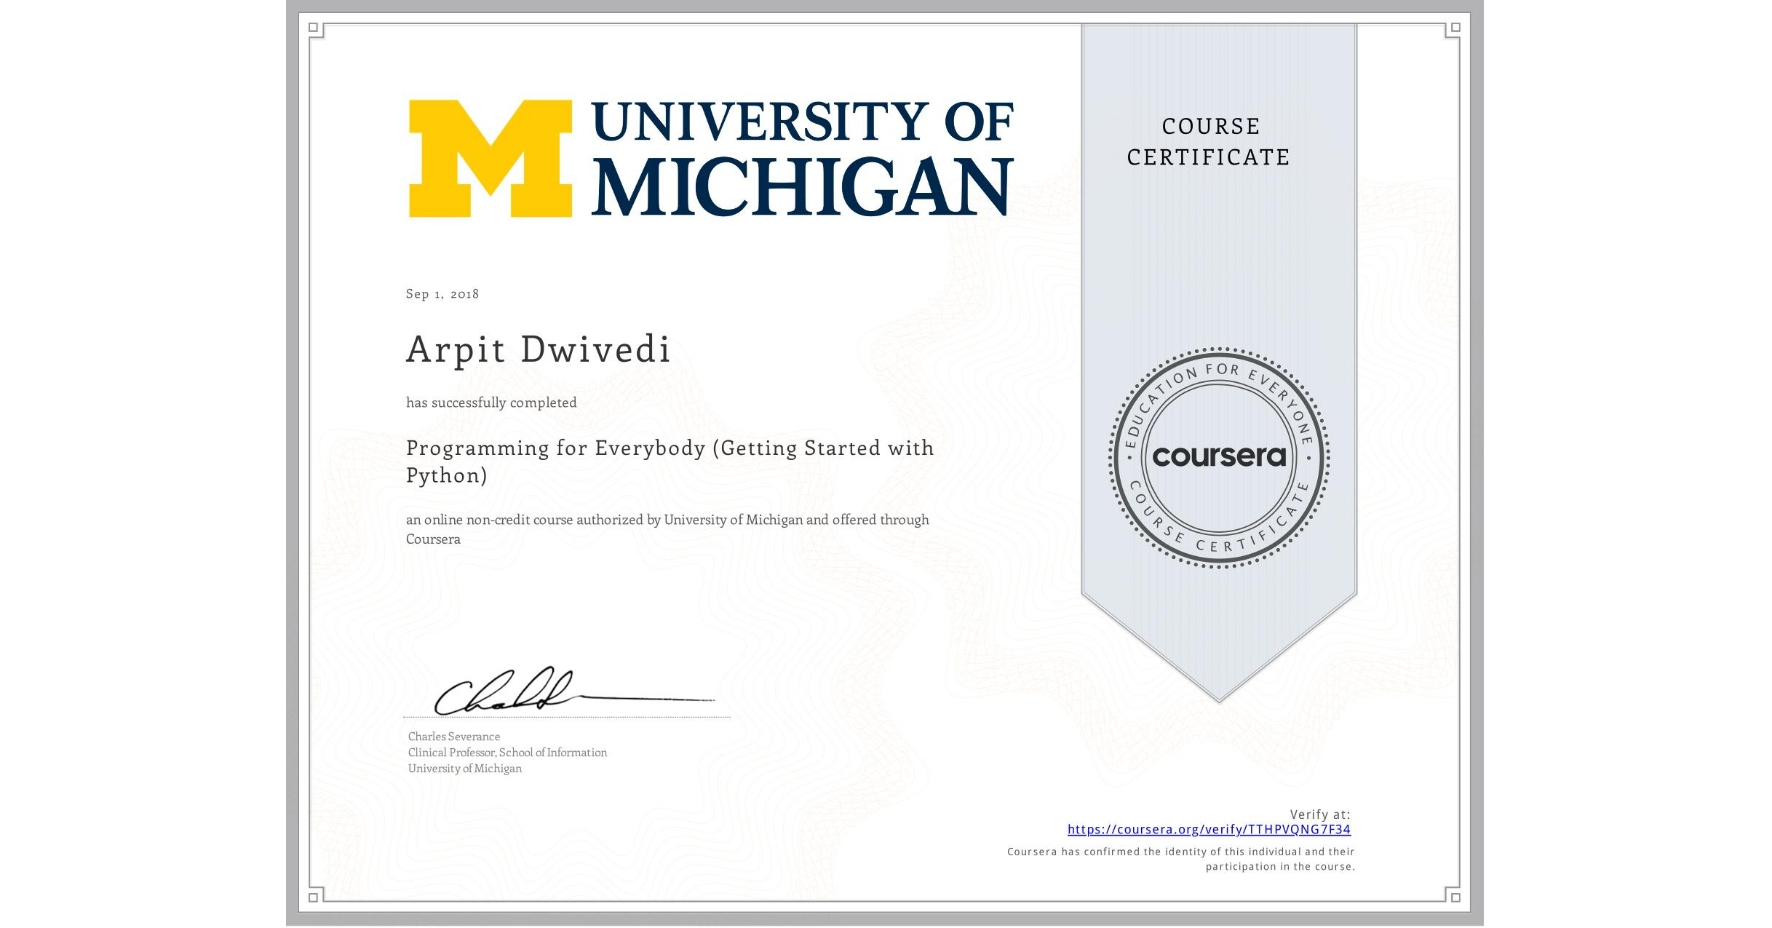 View certificate for Arpit Dwivedi, Programming for Everybody (Getting Started with Python), an online non-credit course authorized by University of Michigan and offered through Coursera